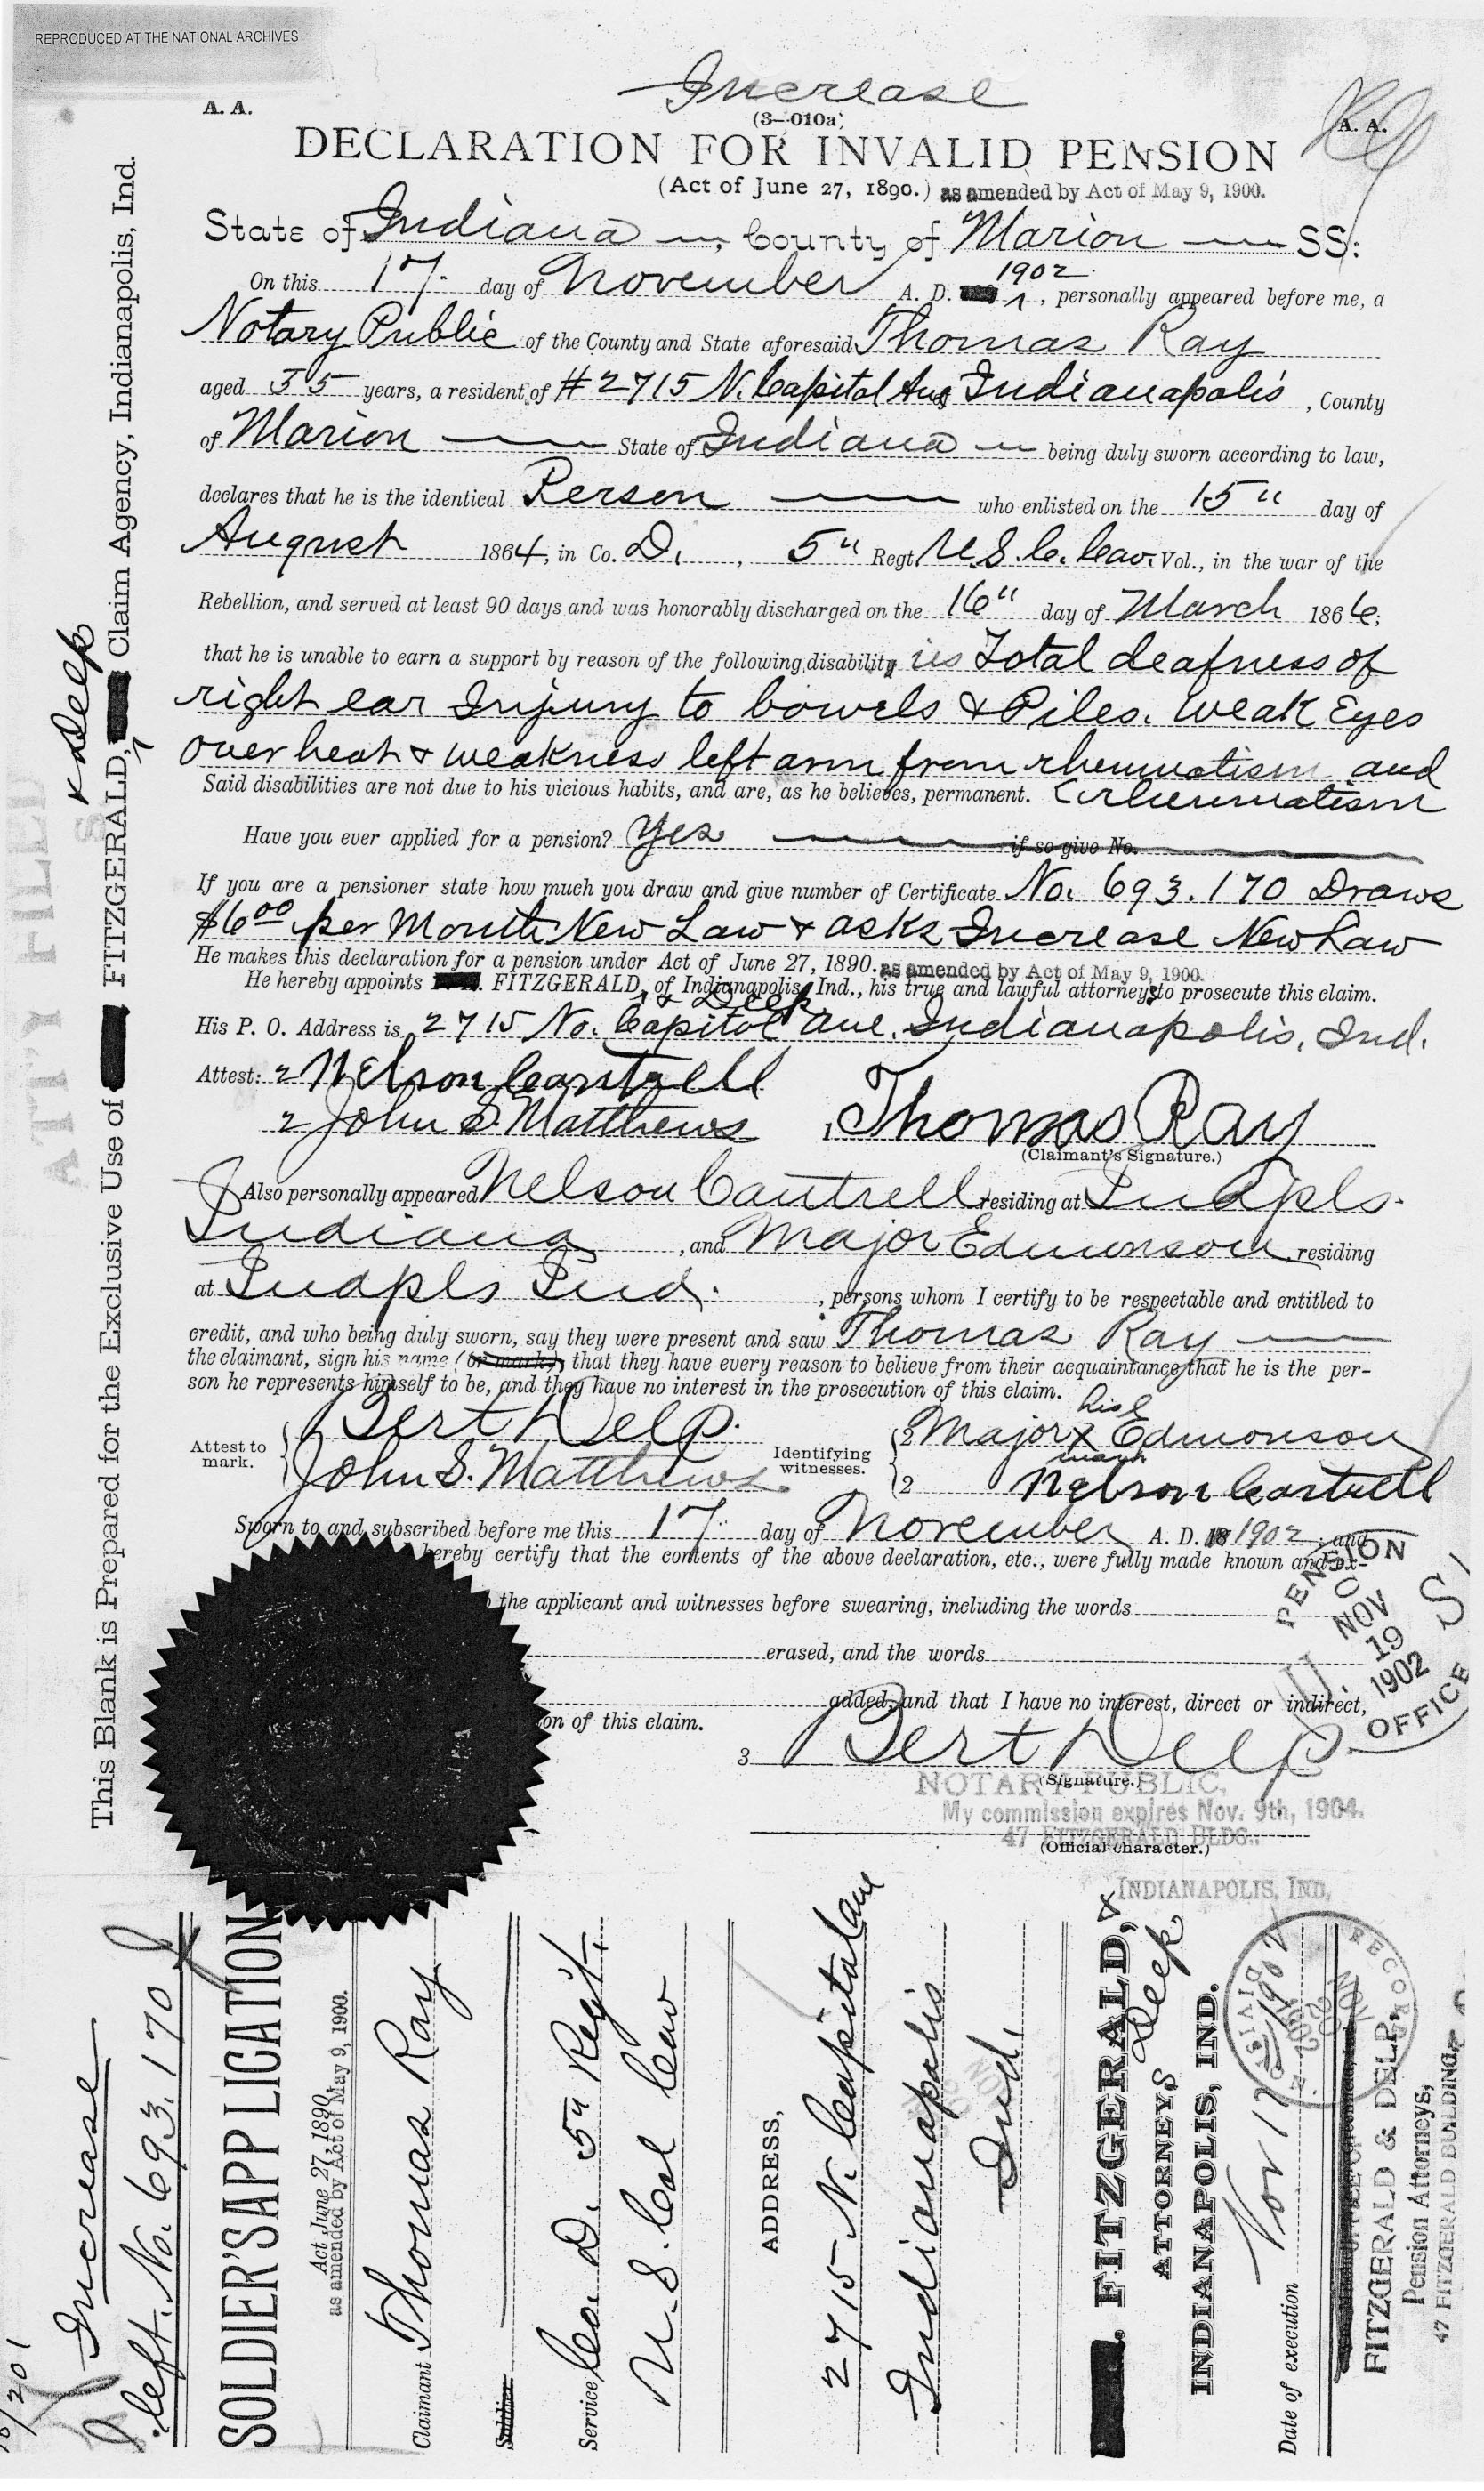 Thomas organ company pension - The Earliest That I Found Major Edmondson In A Record Was His 1884 Marriage License On October 8 1884 He Married Lucy Elms In Manhattan New York